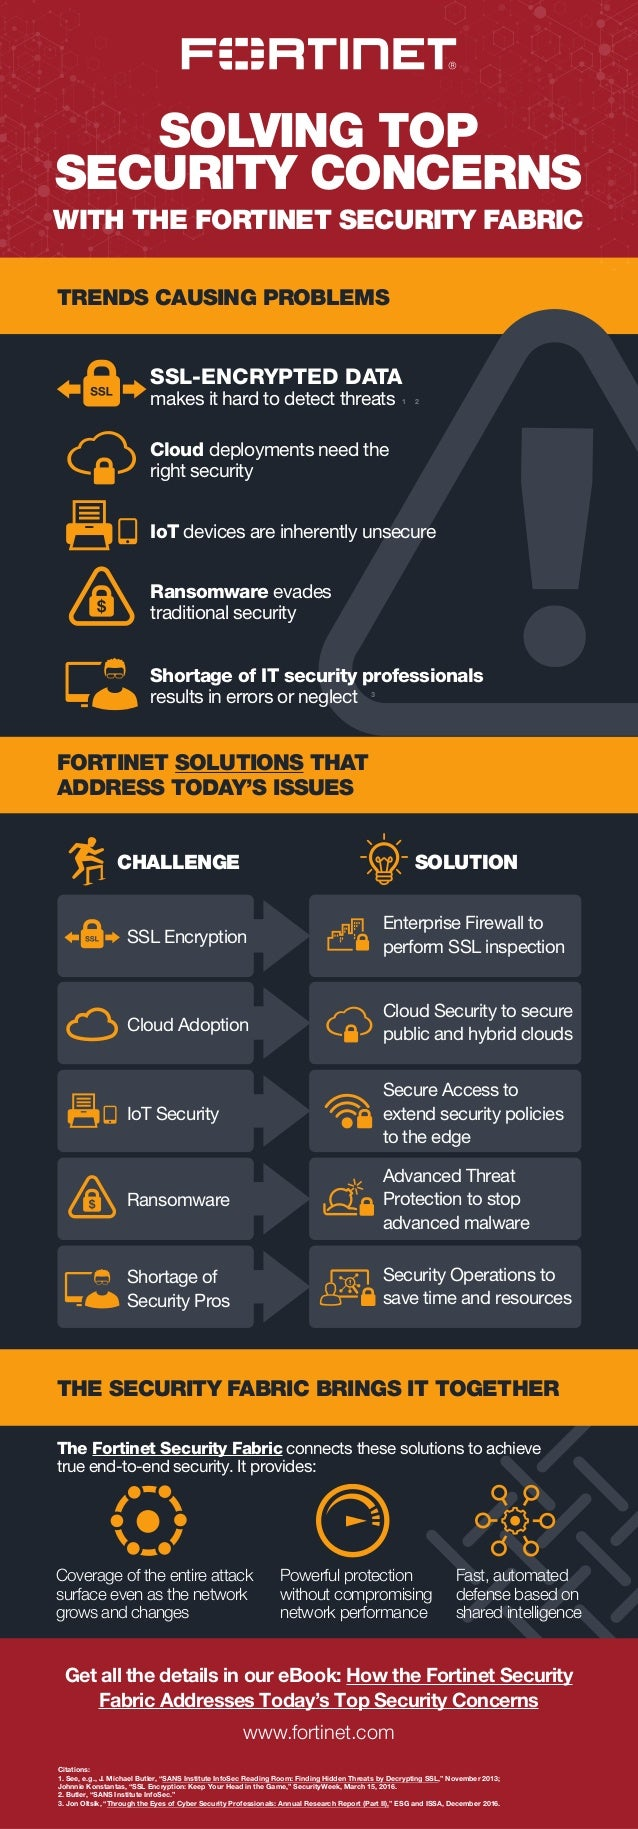 1 2 3 SOLVING TOP SECURITY CONCERNS WITH THE FORTINET SECURITY FABRIC TRENDS CAUSING PROBLEMS FORTINET SOLUTIONS THAT ADDR...